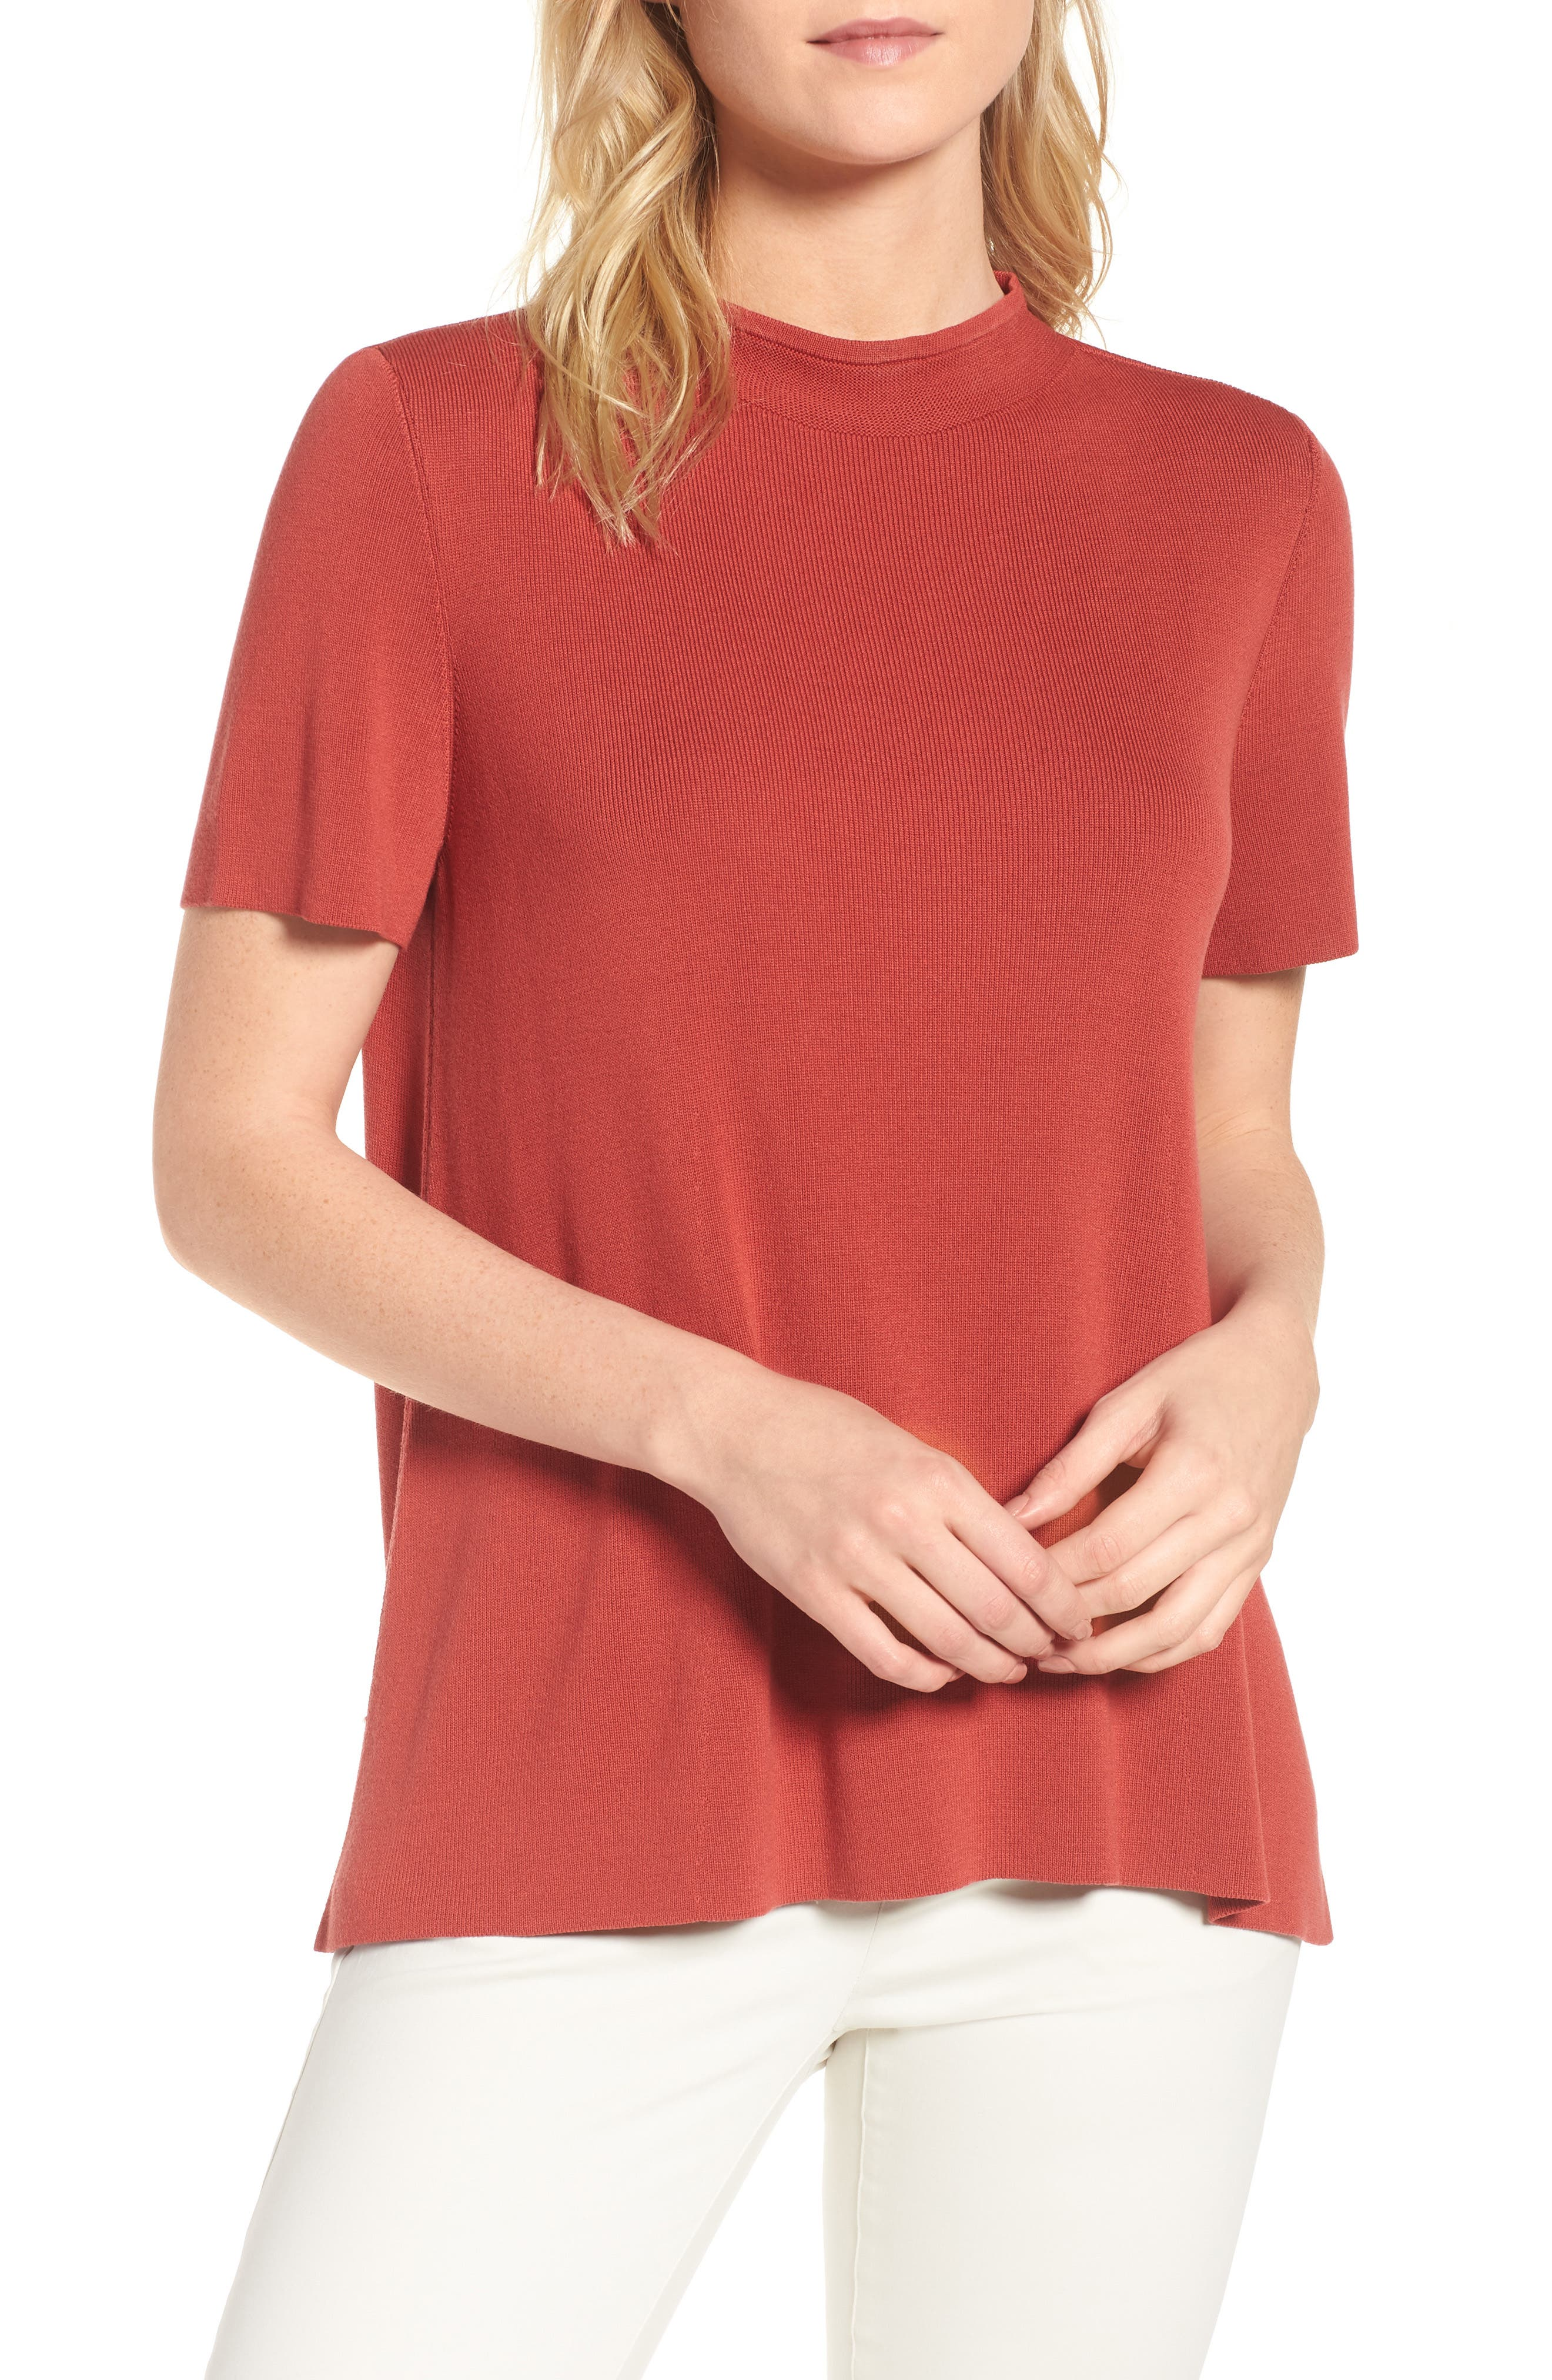 Tencel<sup>®</sup> Lyocell Knit Sweater,                             Main thumbnail 1, color,                             Coral Rose